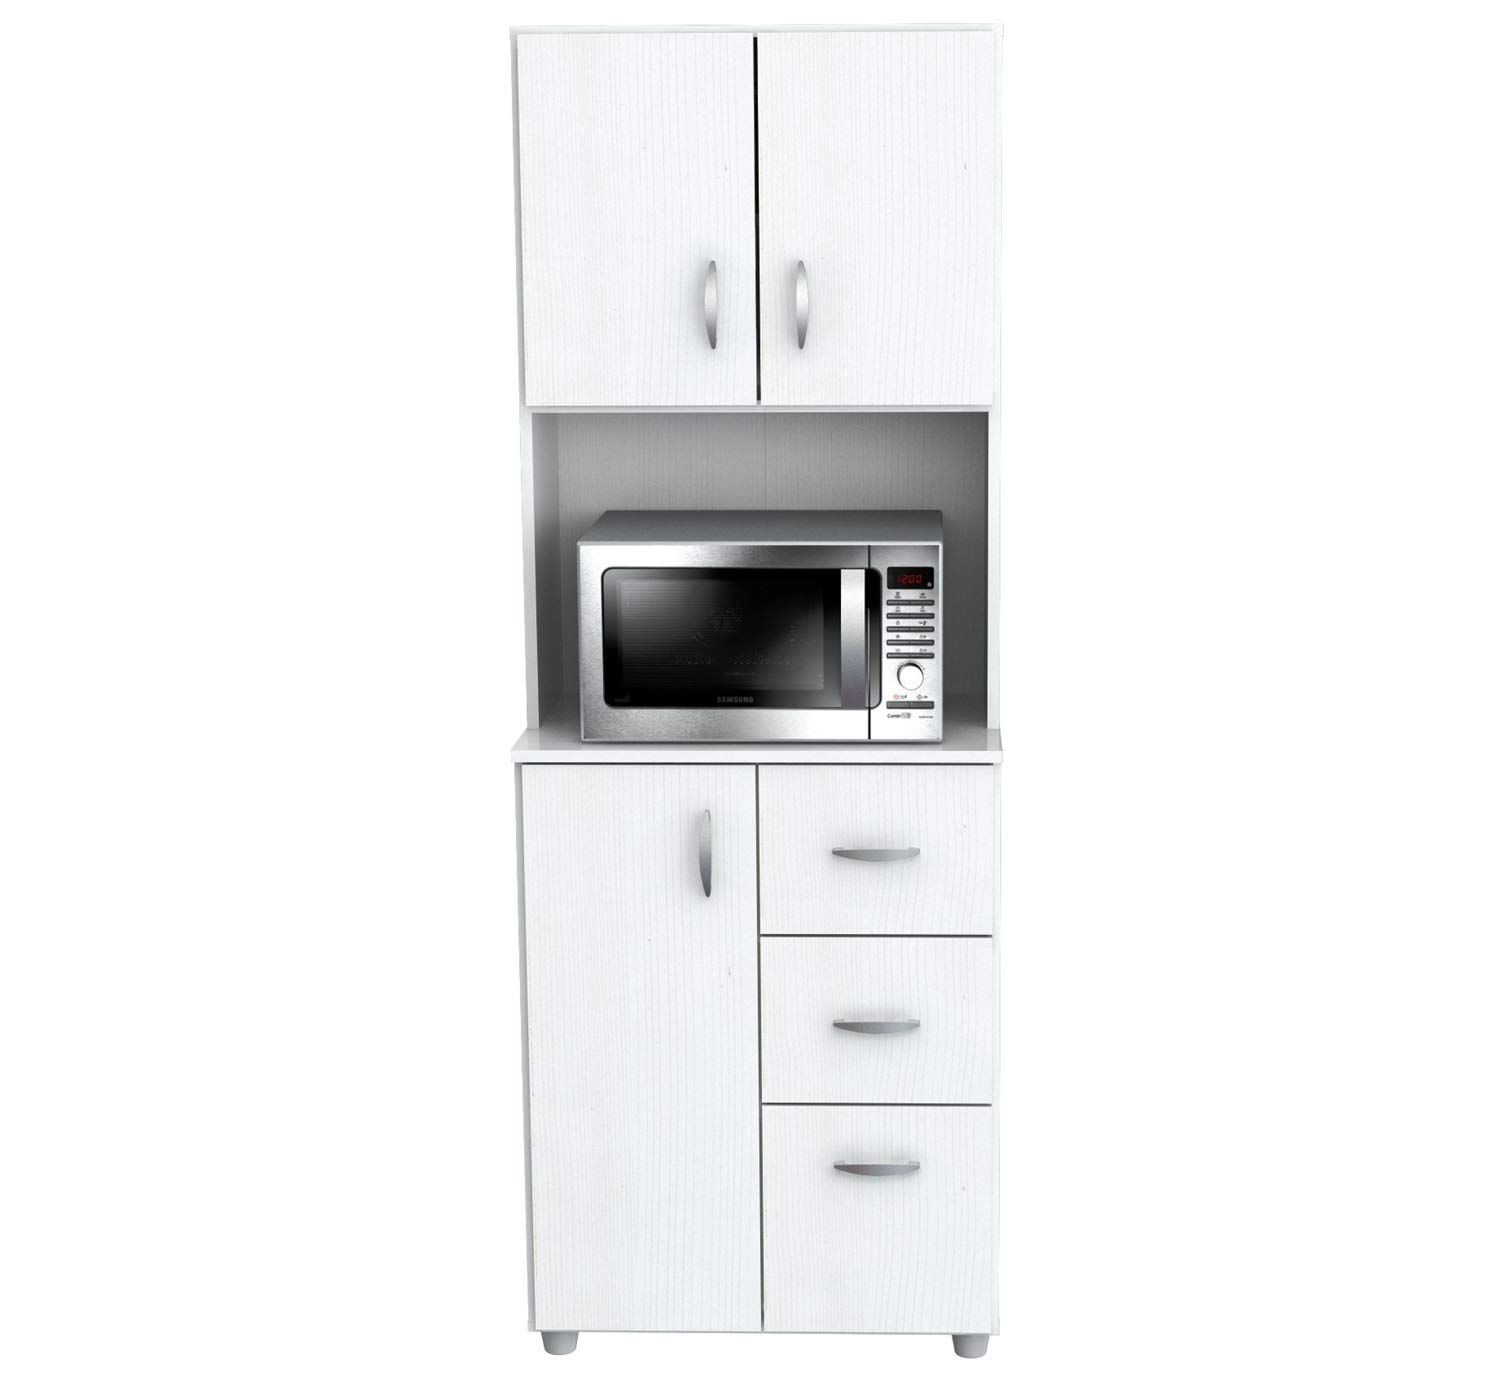 66'' Kitchen Pantry - Contemporary Tall Microwave Stand - Modern Storage Organizer with 3 Doors, Open Shelf and 3 Drawers